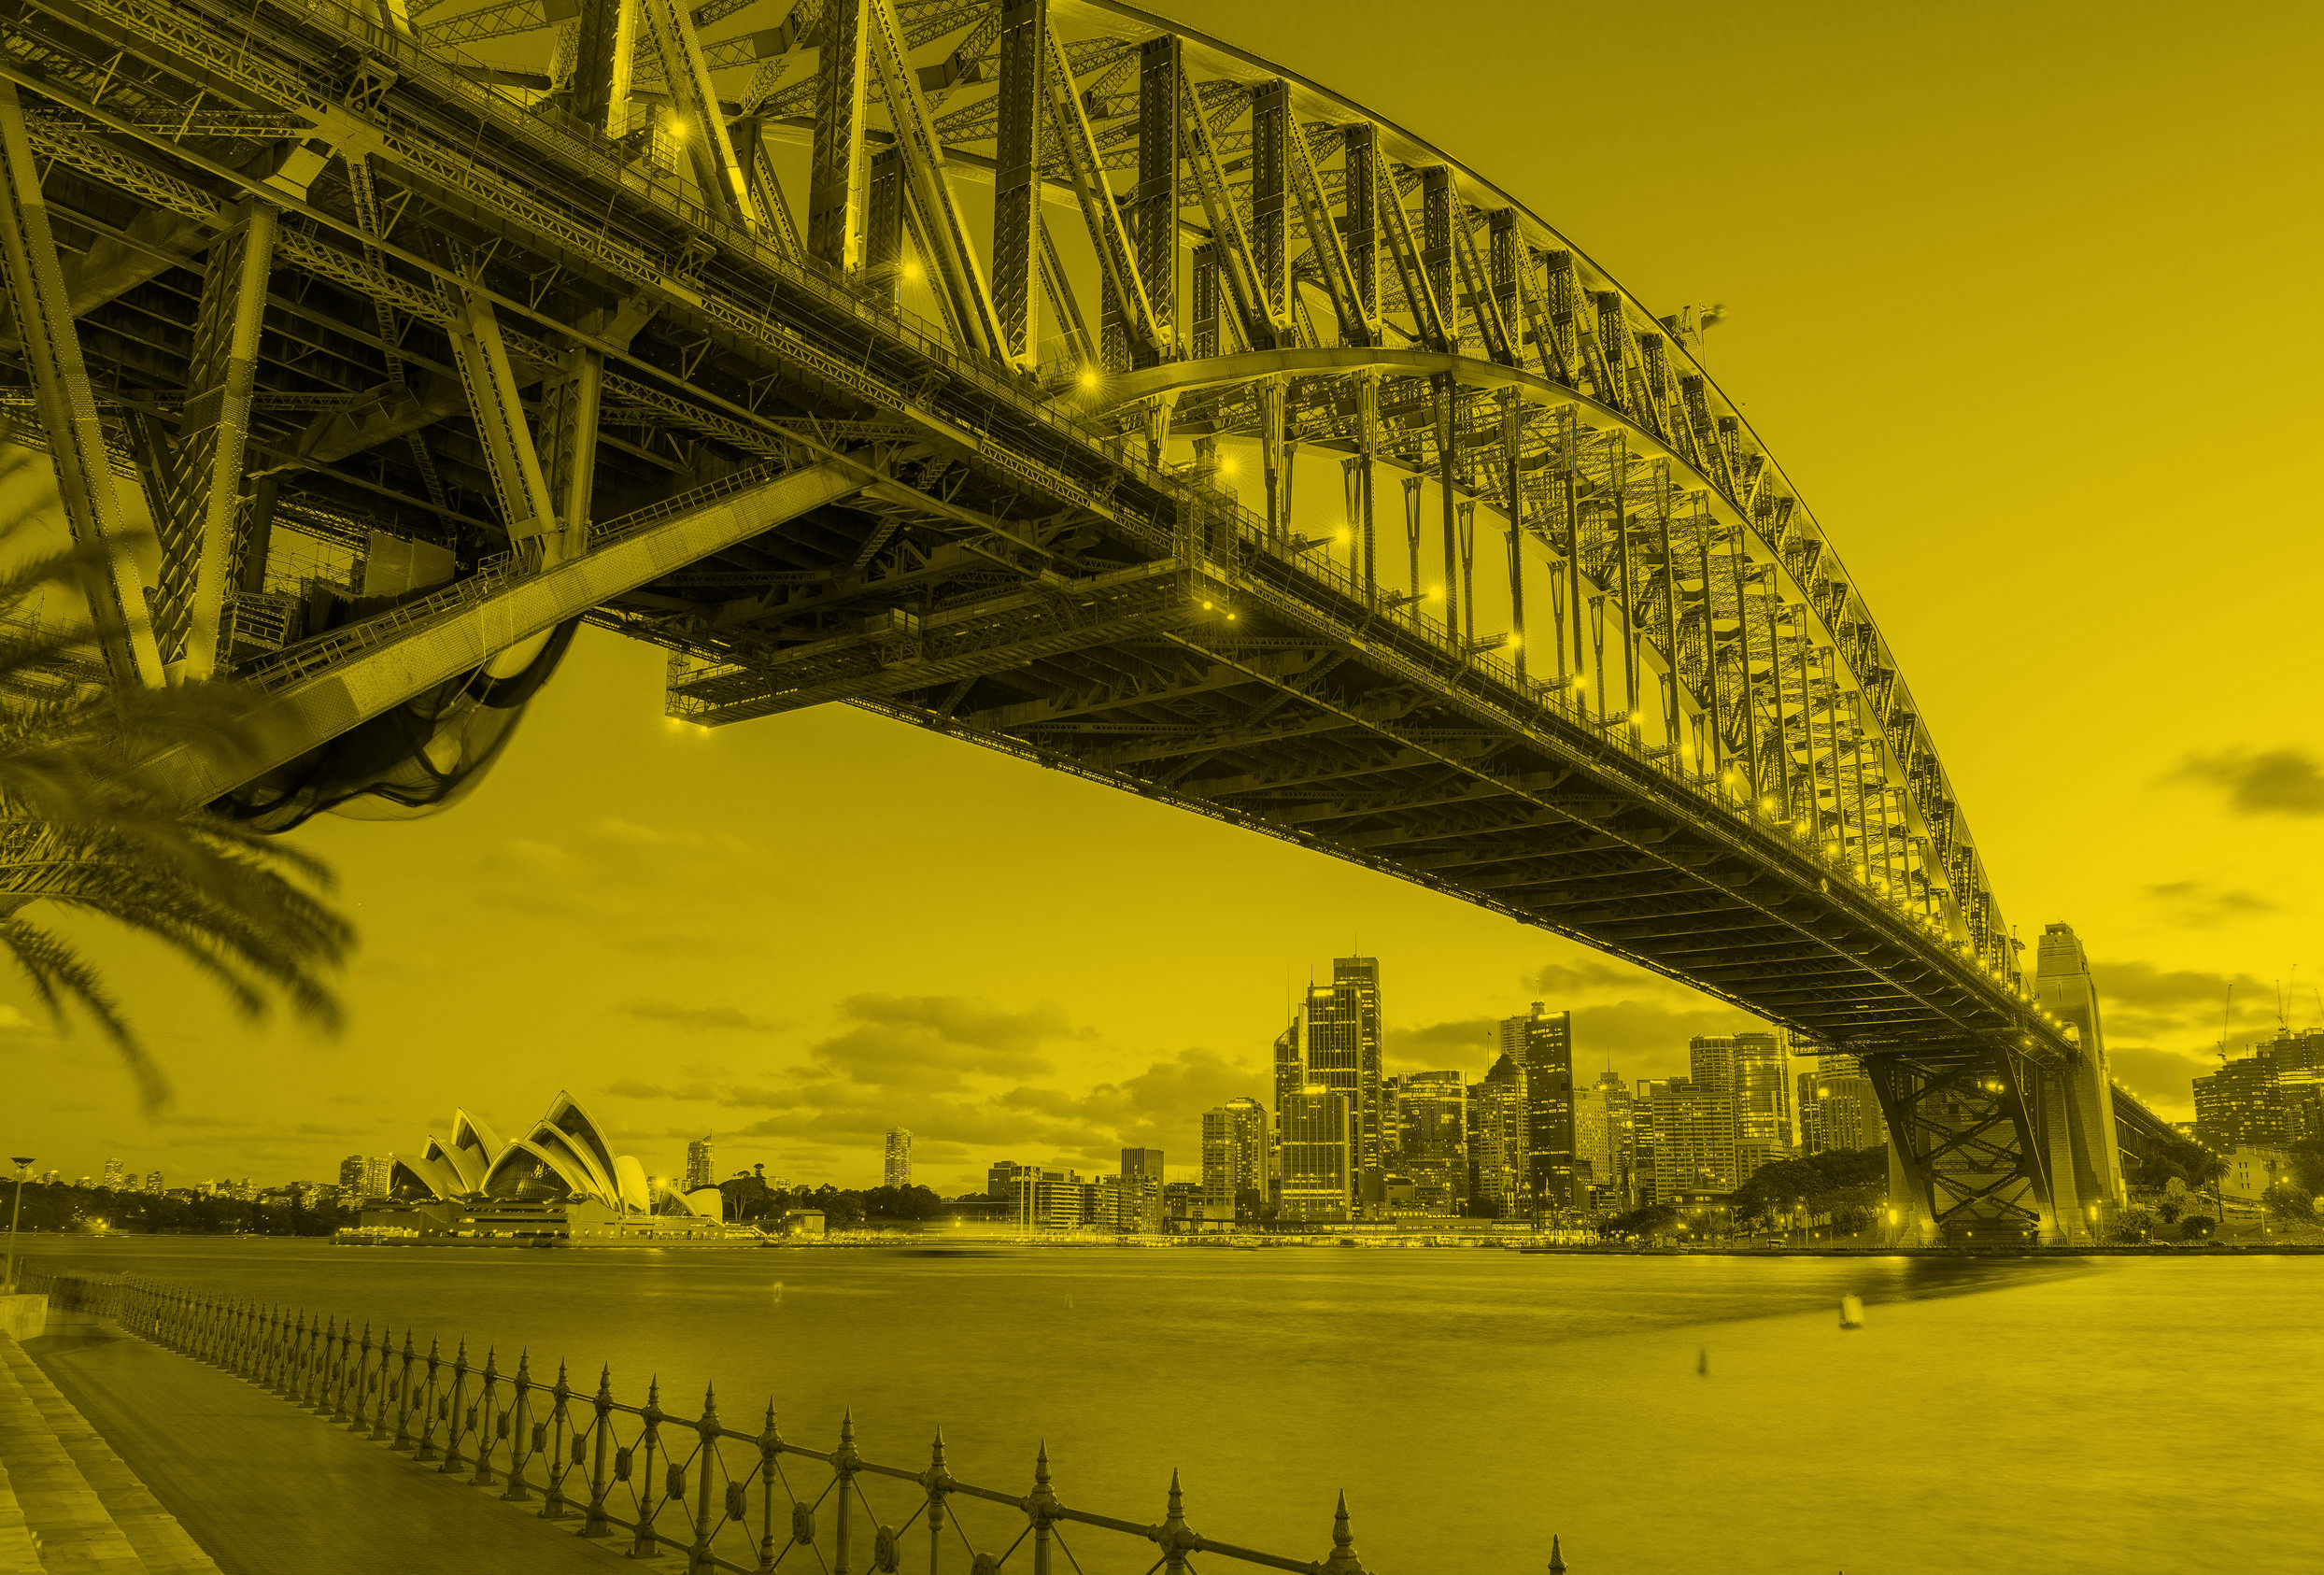 Digital Agency Sydney Australia